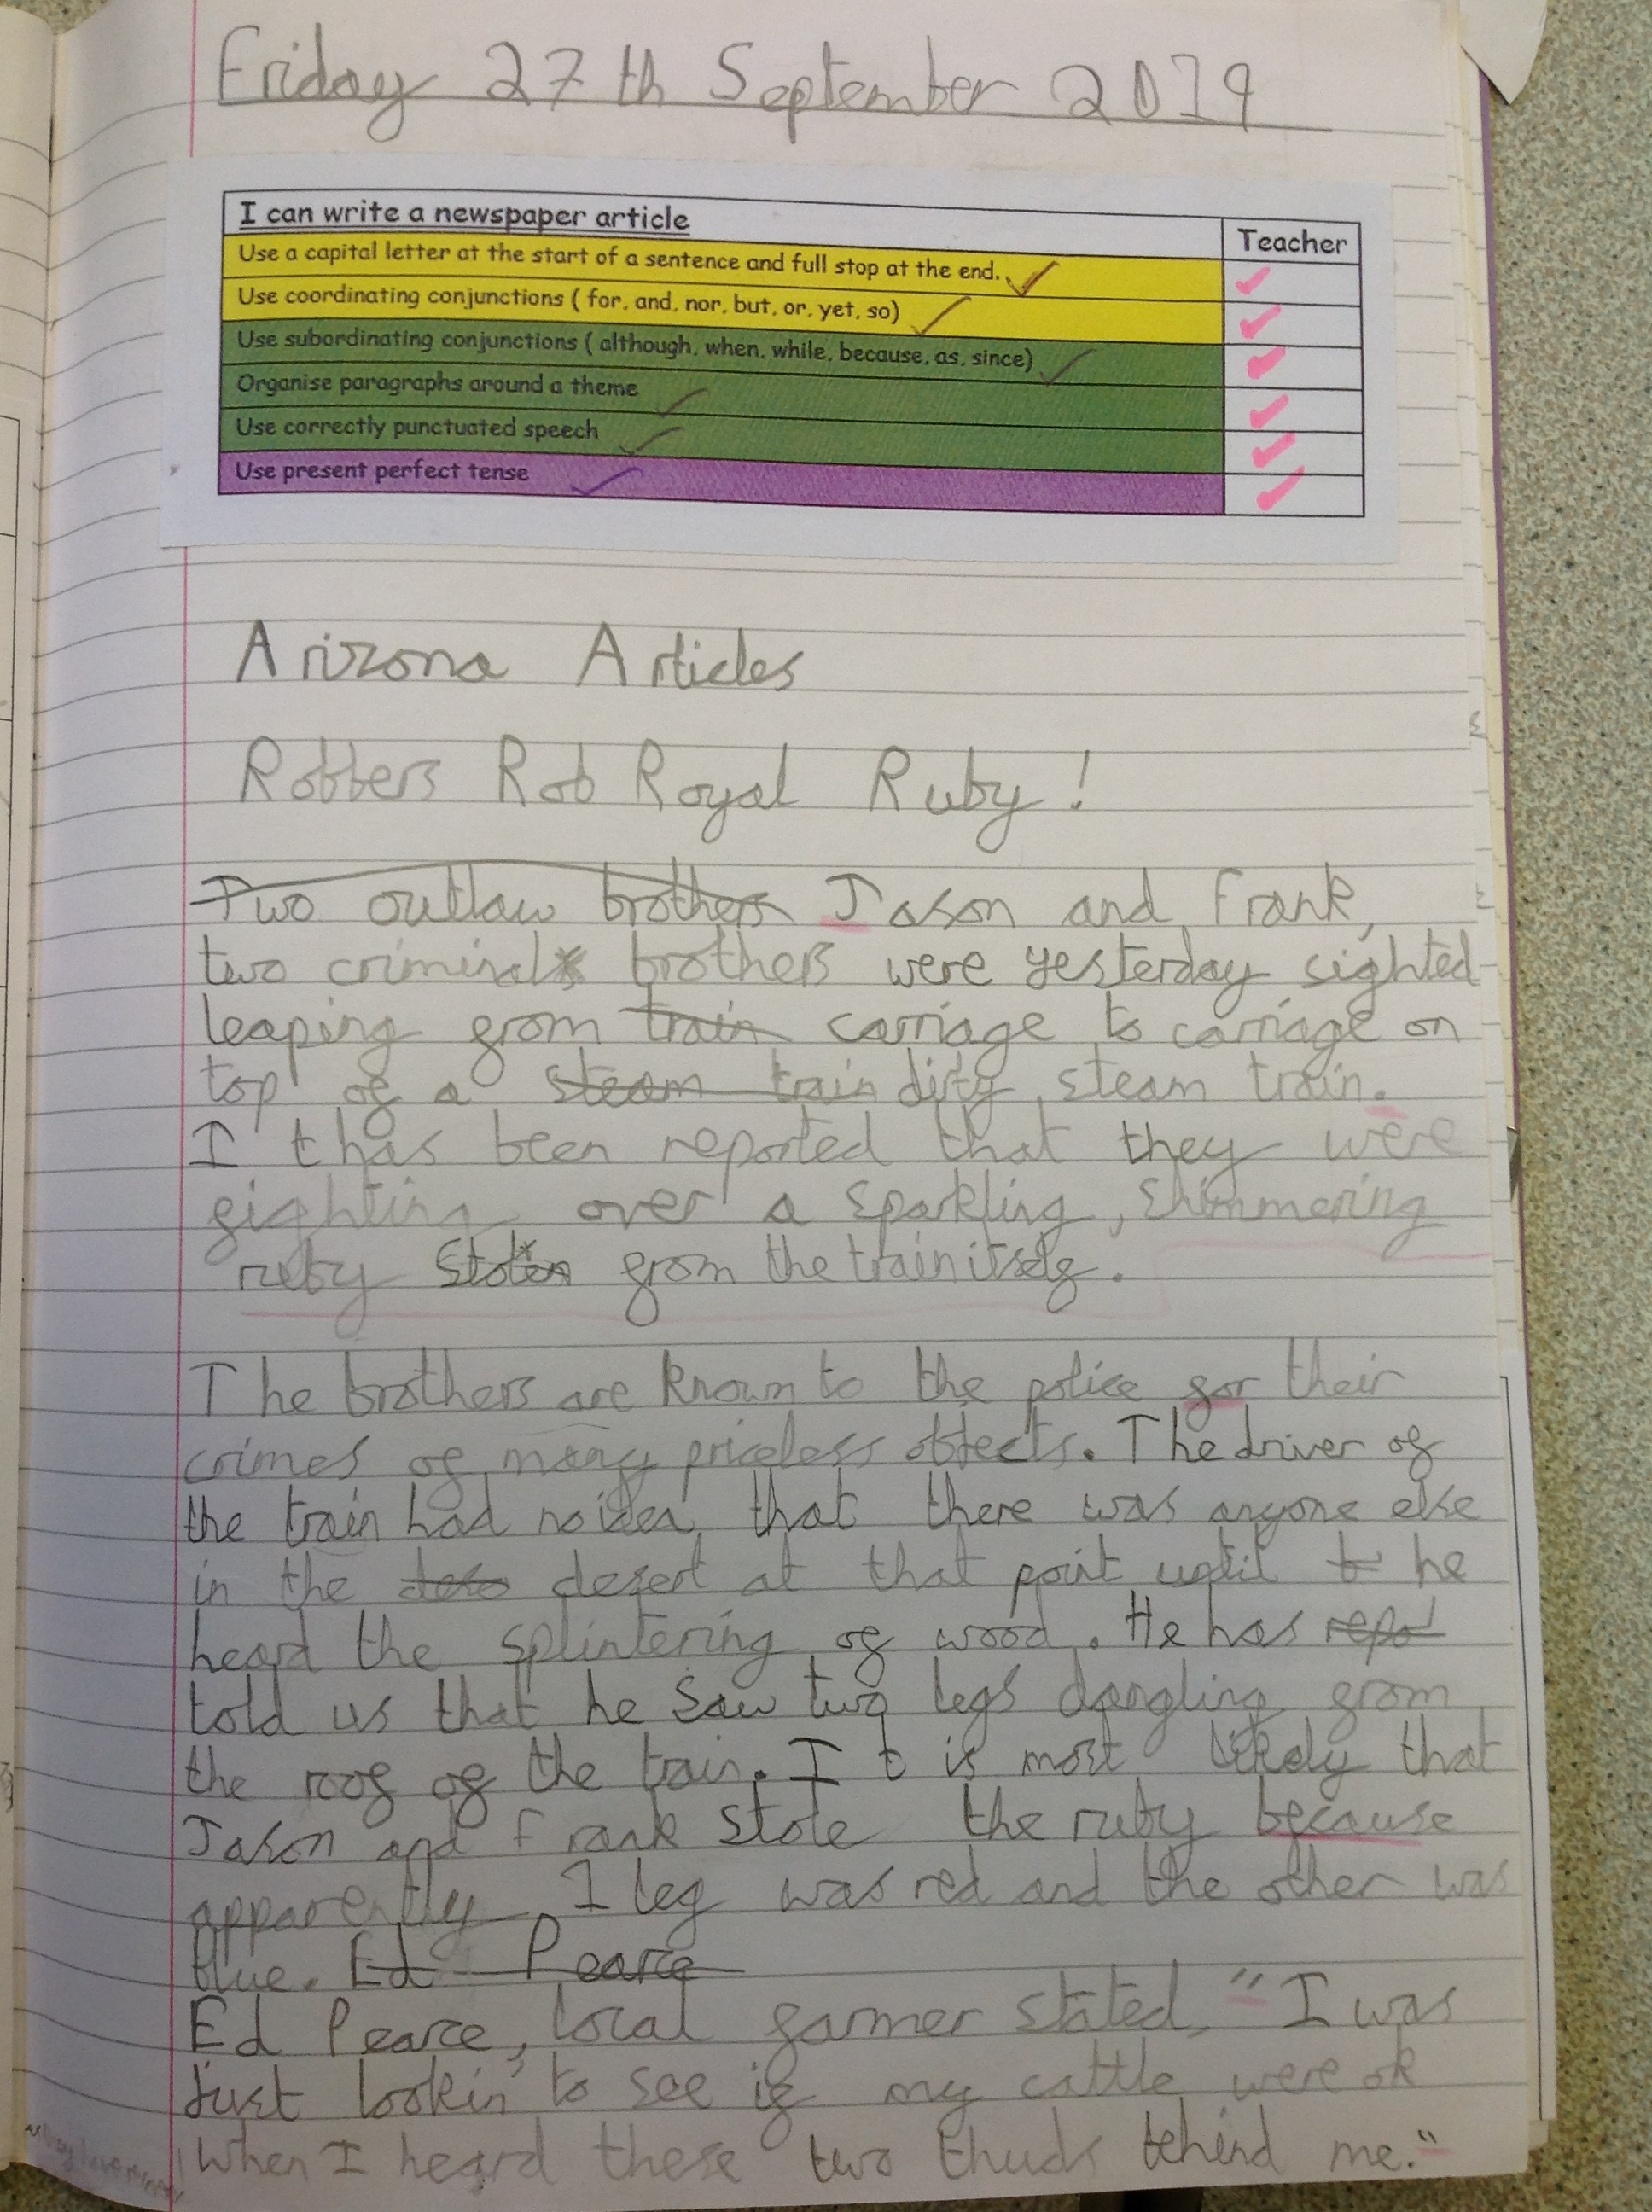 A news report by Ed